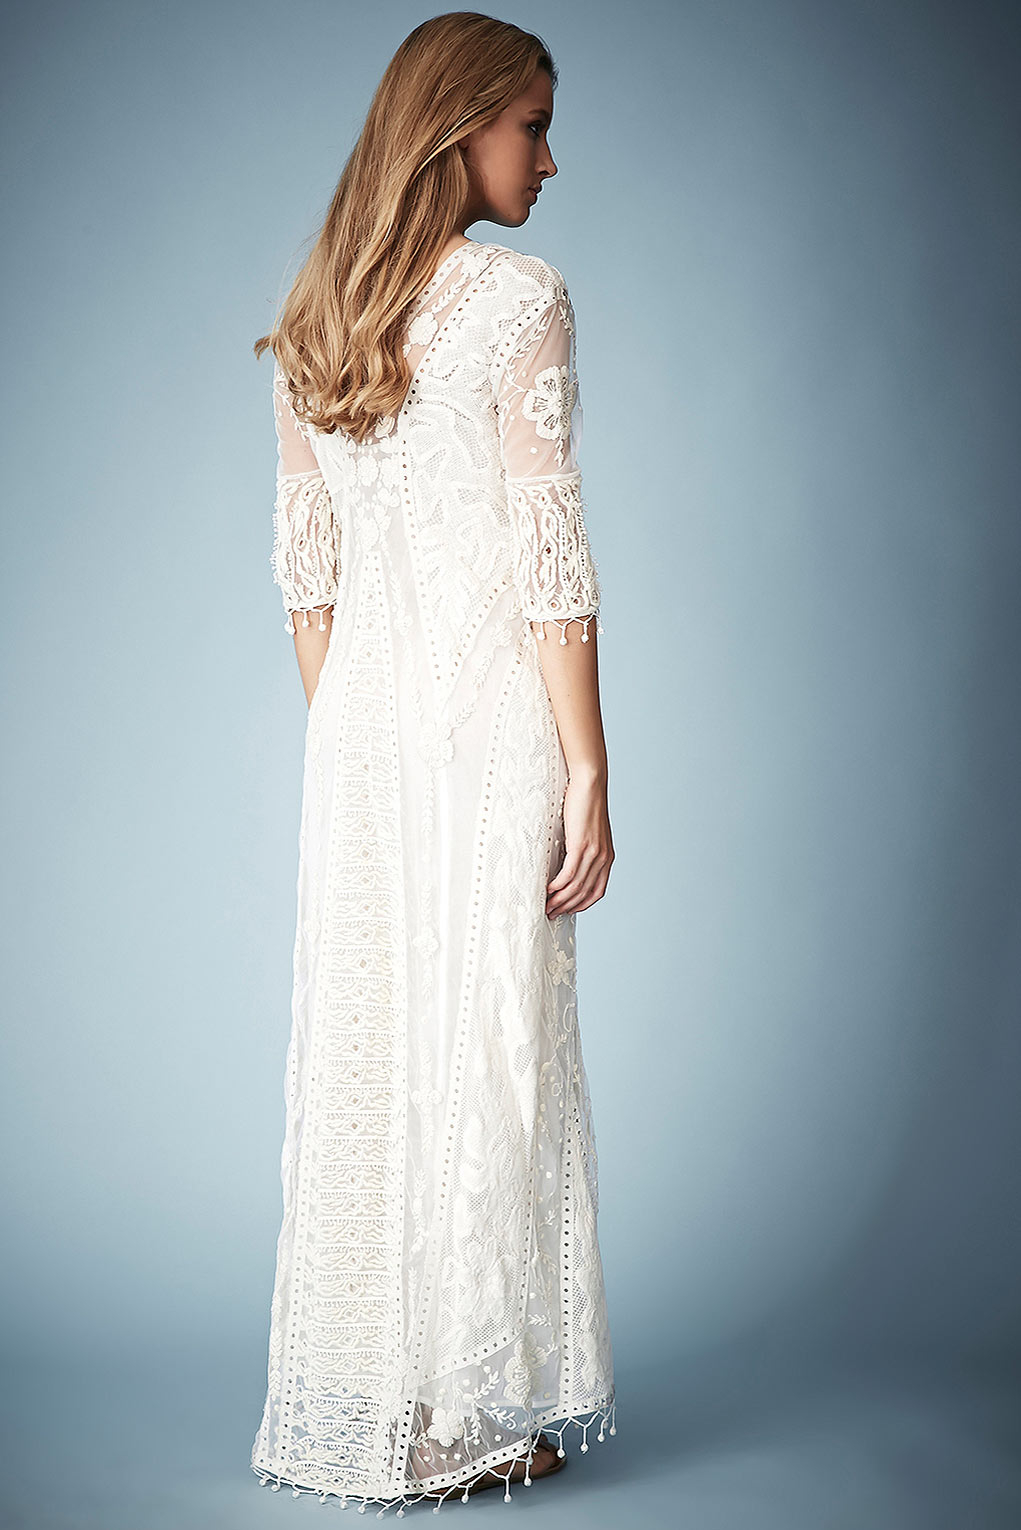 Topshop Crochet Lace Maxi Dress By Kate Moss For In Cream